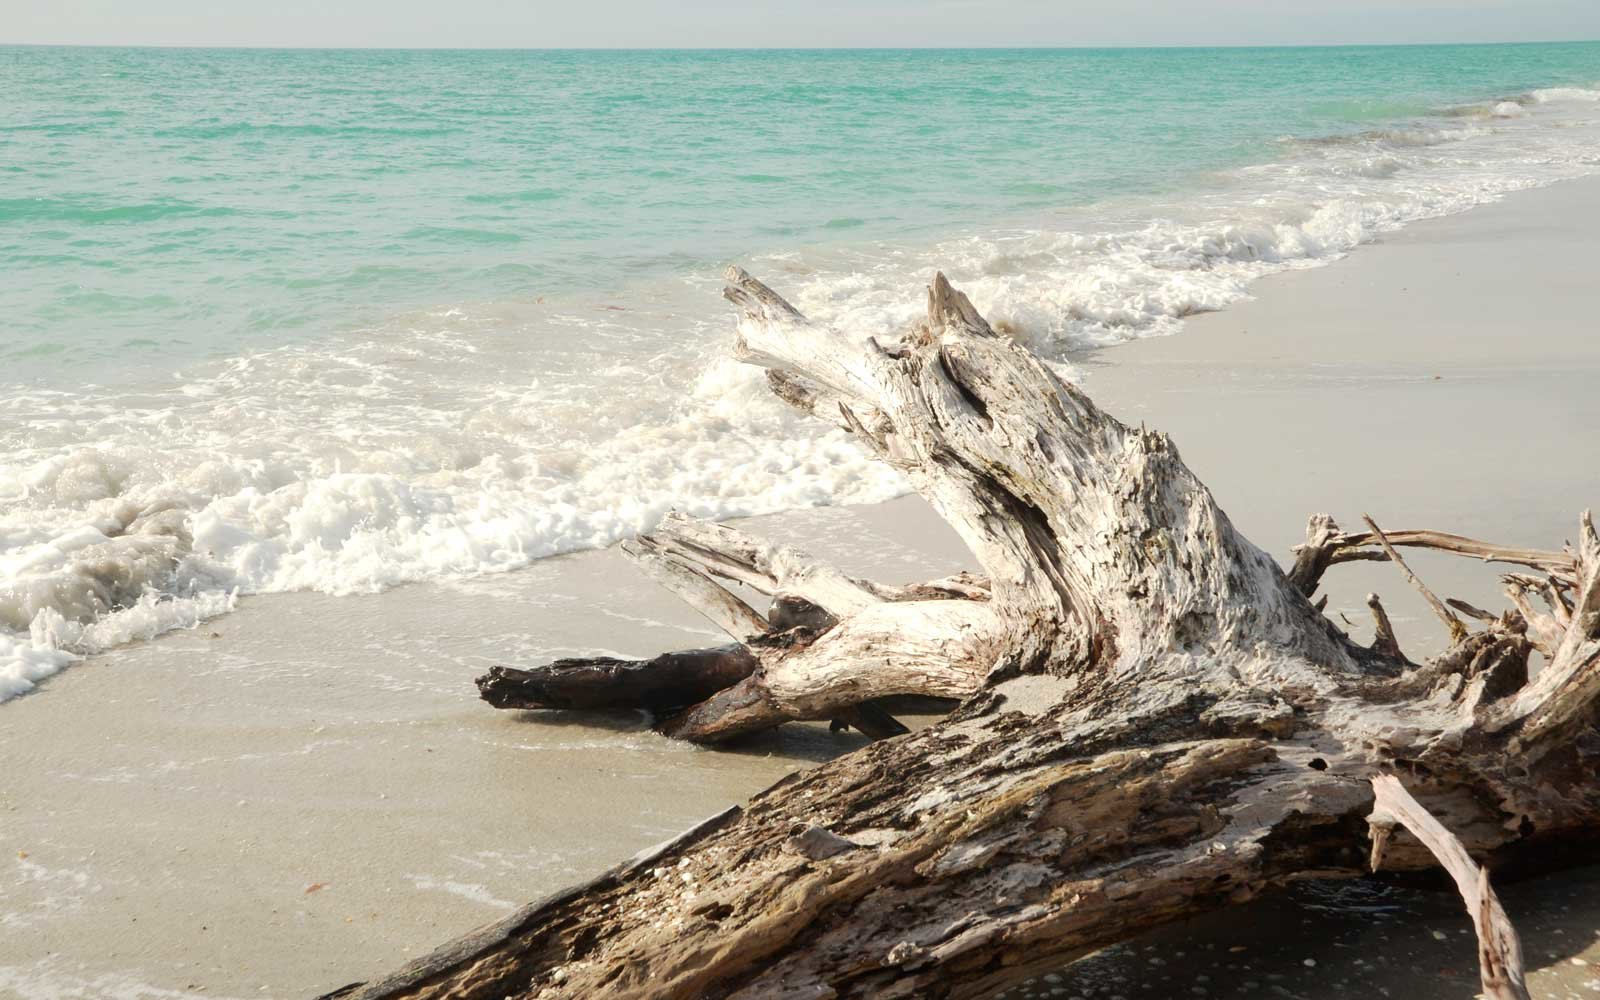 Piece of driftwood along the wages of the Gulf of Mexico at Stump Pass State park in Englewood, Florida.